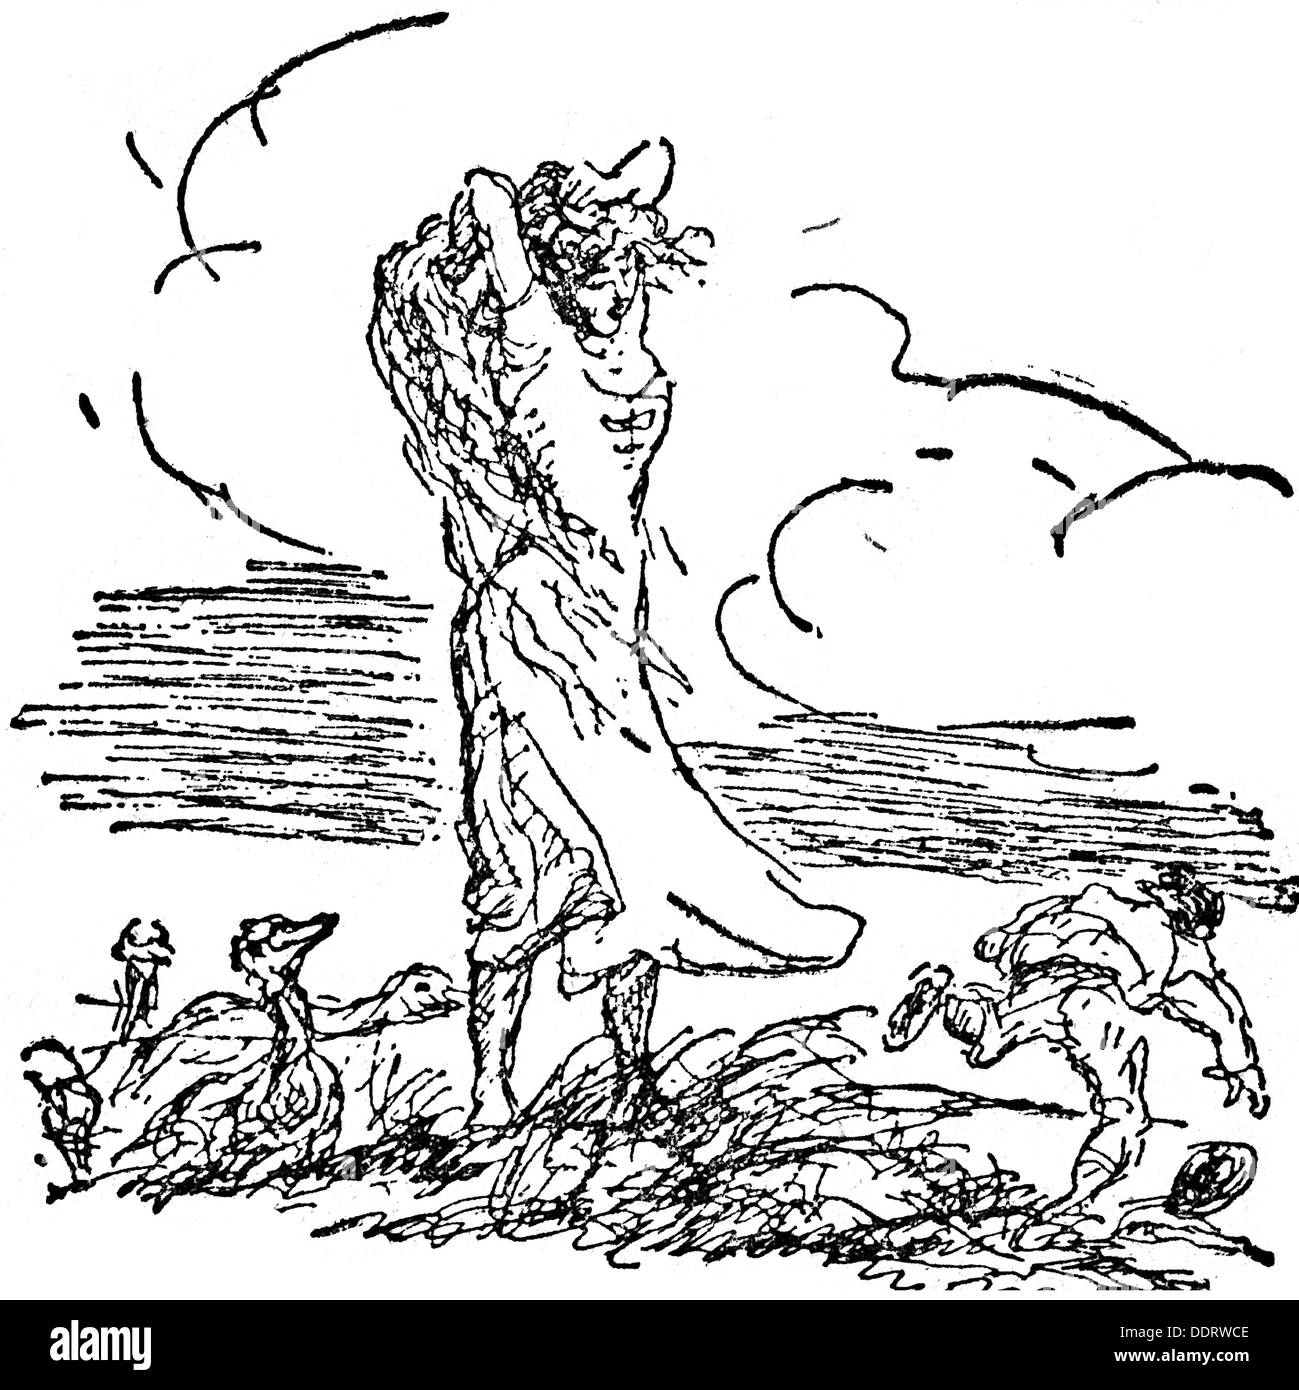 literature, fairy tales, Grimm Brothers, 'The Goose Girl', drawing by Max Slevogt (1868 - 1932), from: 'Kunst und Künstler', volume XVI, Verlag von Bruno Cassirer, Berlin, 1918, Additional-Rights-Clearences-NA - Stock Image